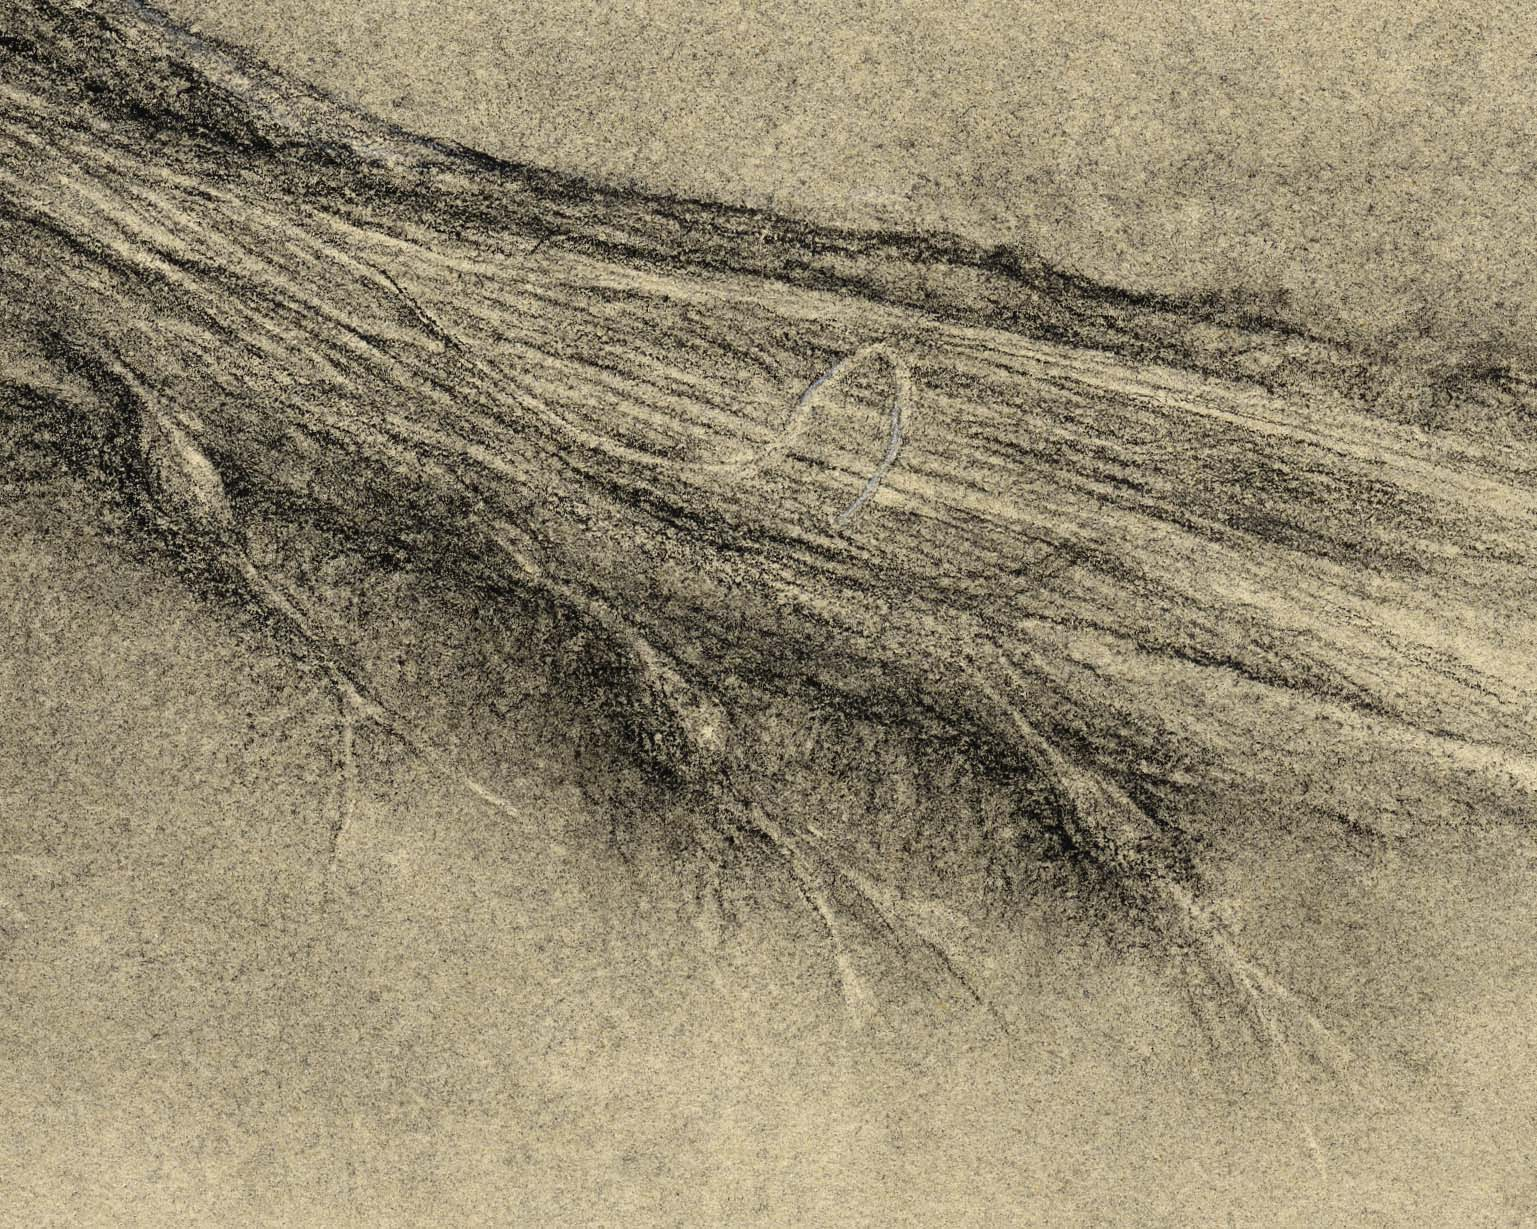 spinal_cord_w_nerve_roots-detail.jpg